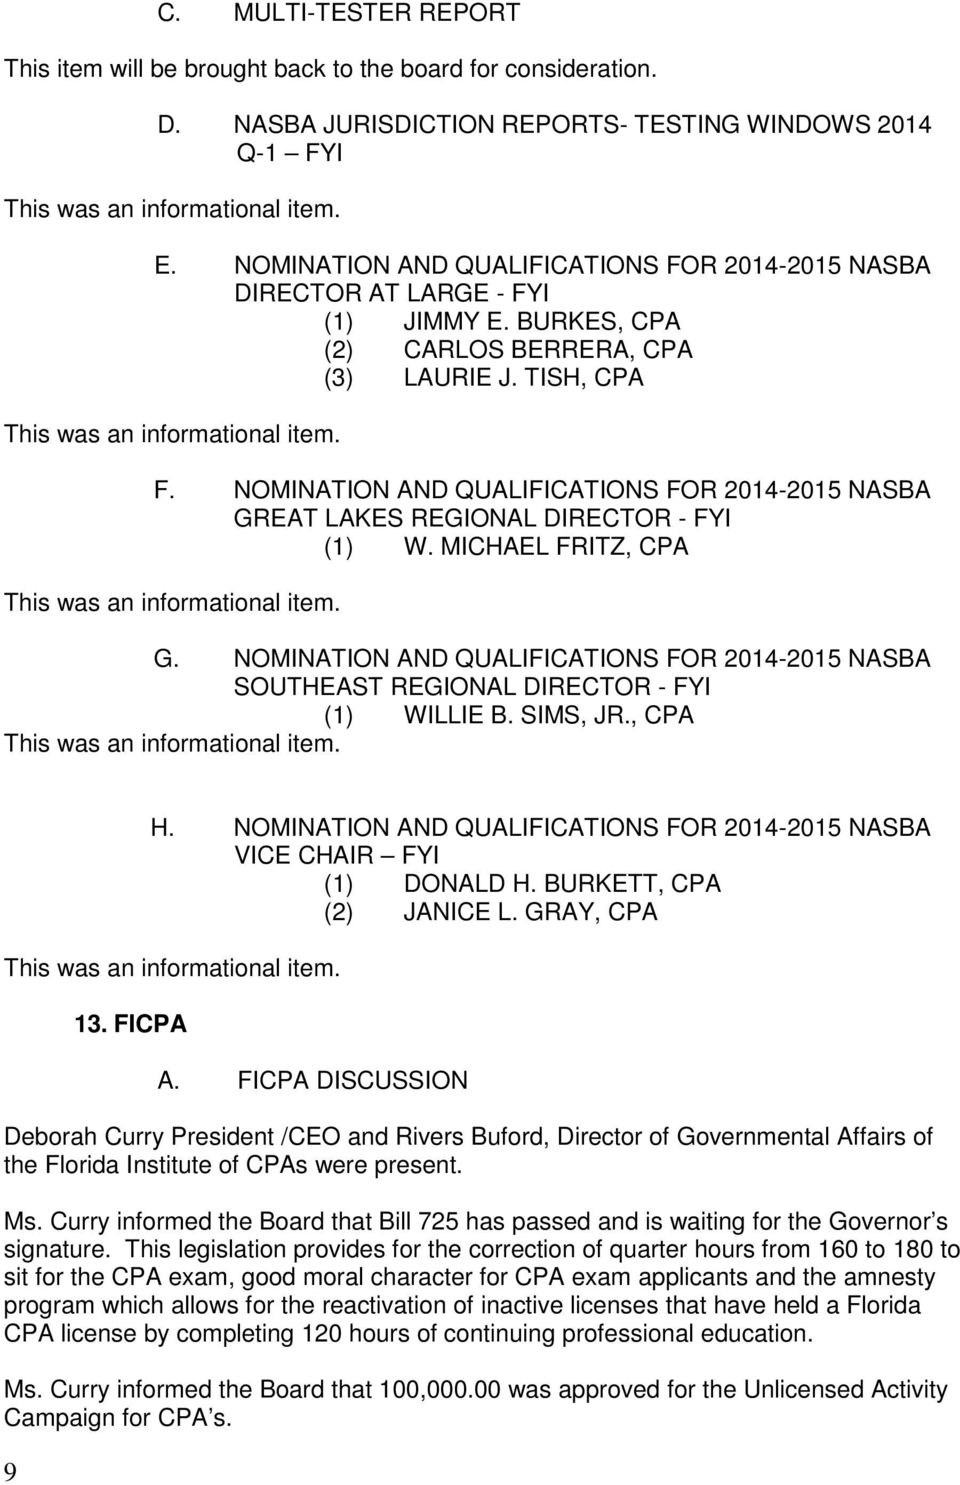 NOMINATION AND QUALIFICATIONS FOR 2014-2015 NASBA GREAT LAKES REGIONAL DIRECTOR - FYI (1) W. MICHAEL FRITZ, CPA G.